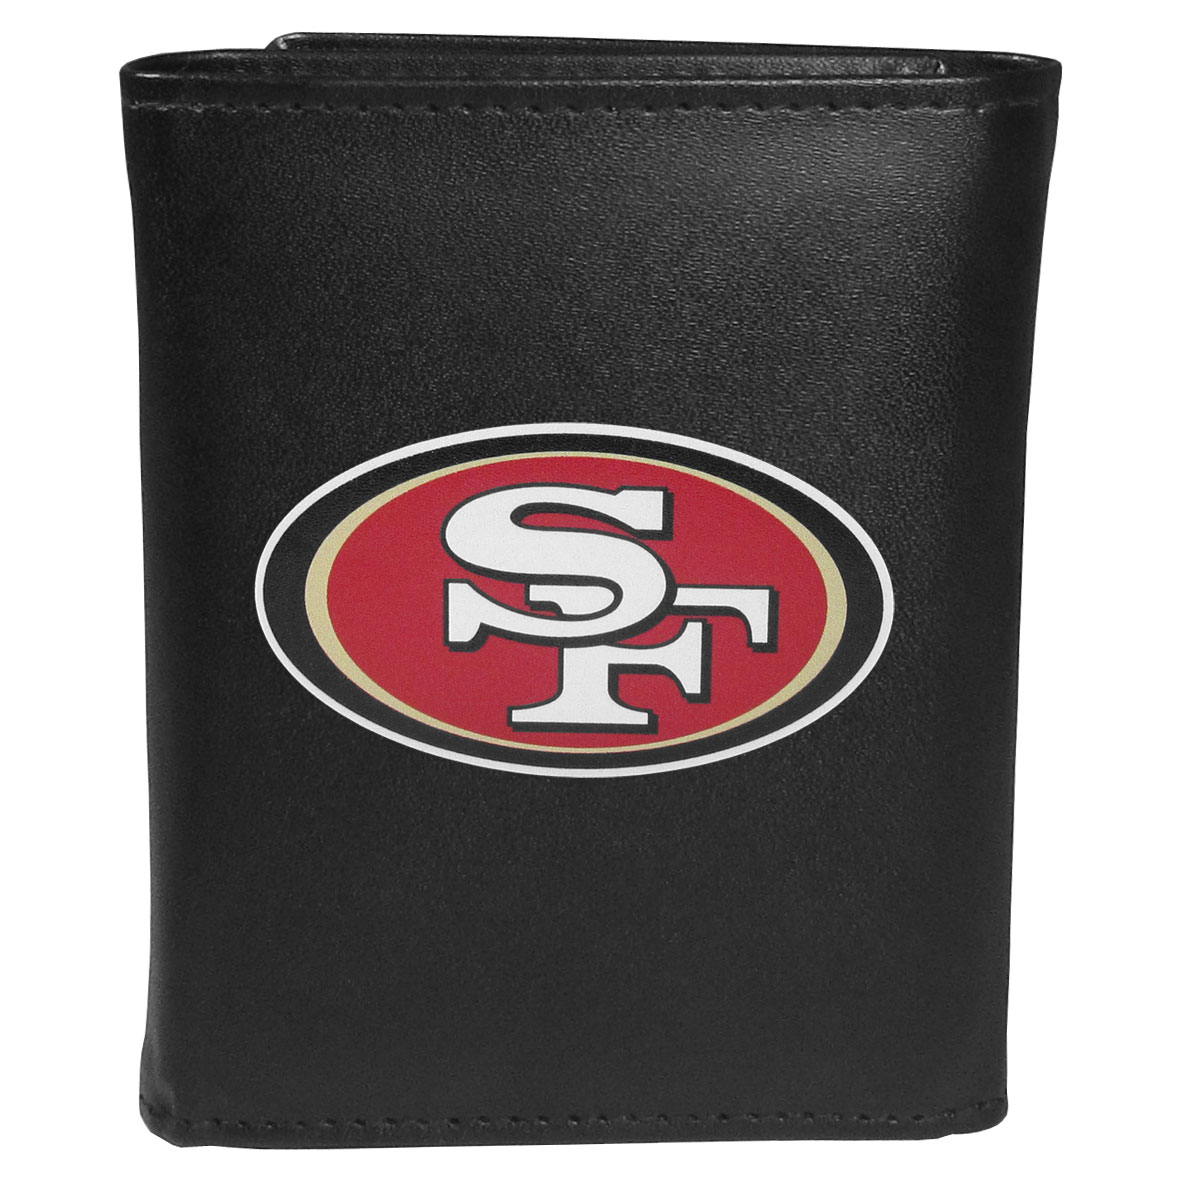 San Francisco 49ers Leather Tri-fold Wallet, Large Logo - Our classic fine leather tri-fold wallet is meticulously crafted with genuine leather that will age beautifully so you will have a quality wallet for years to come. This is fan apparel at its finest. The wallet is packed with organizational  features; lots of credit card slots, large billfold pocket, and a window ID slot. The front of the wallet features an extra large San Francisco 49ers printed logo.